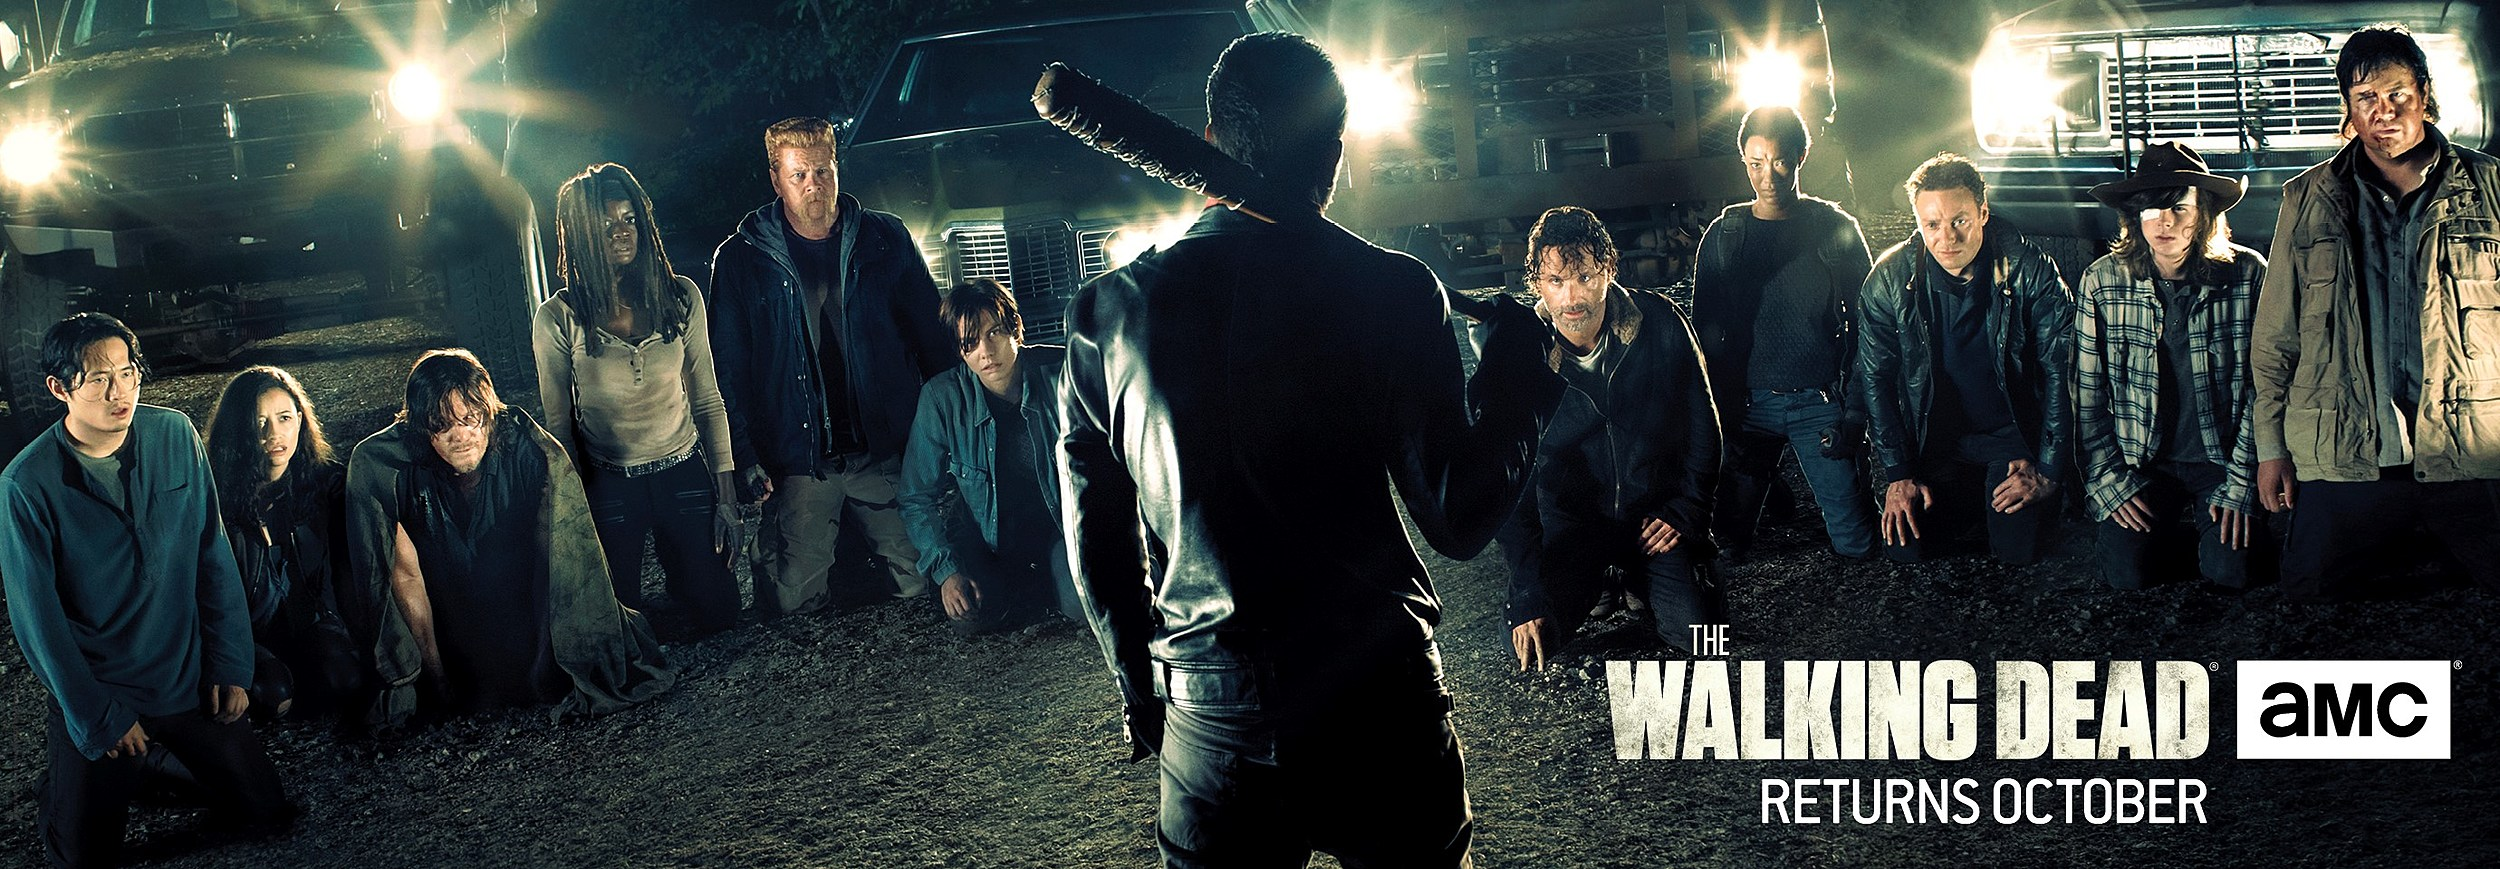 The Walking Dead : the day will come when you won't be.